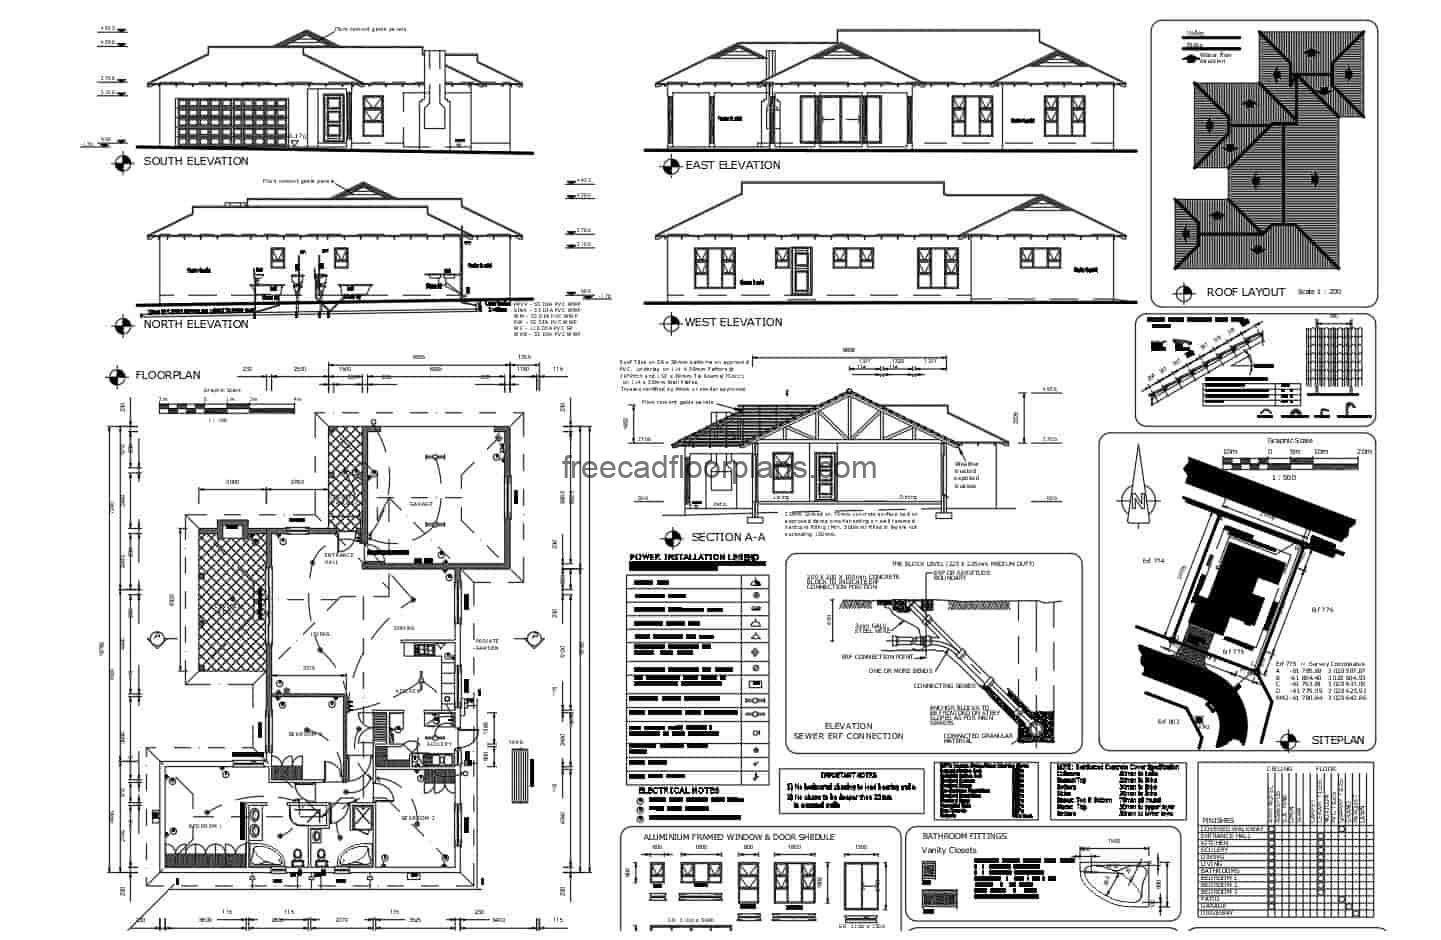 Complete architectural project plans of a country residence of one level with three rooms, the complete project composes architectural plans, dimensioning, elevations, sections, siteplan, doors and windows plan, structural and wood details. Bluprints for free download in DWG format from Autocad.